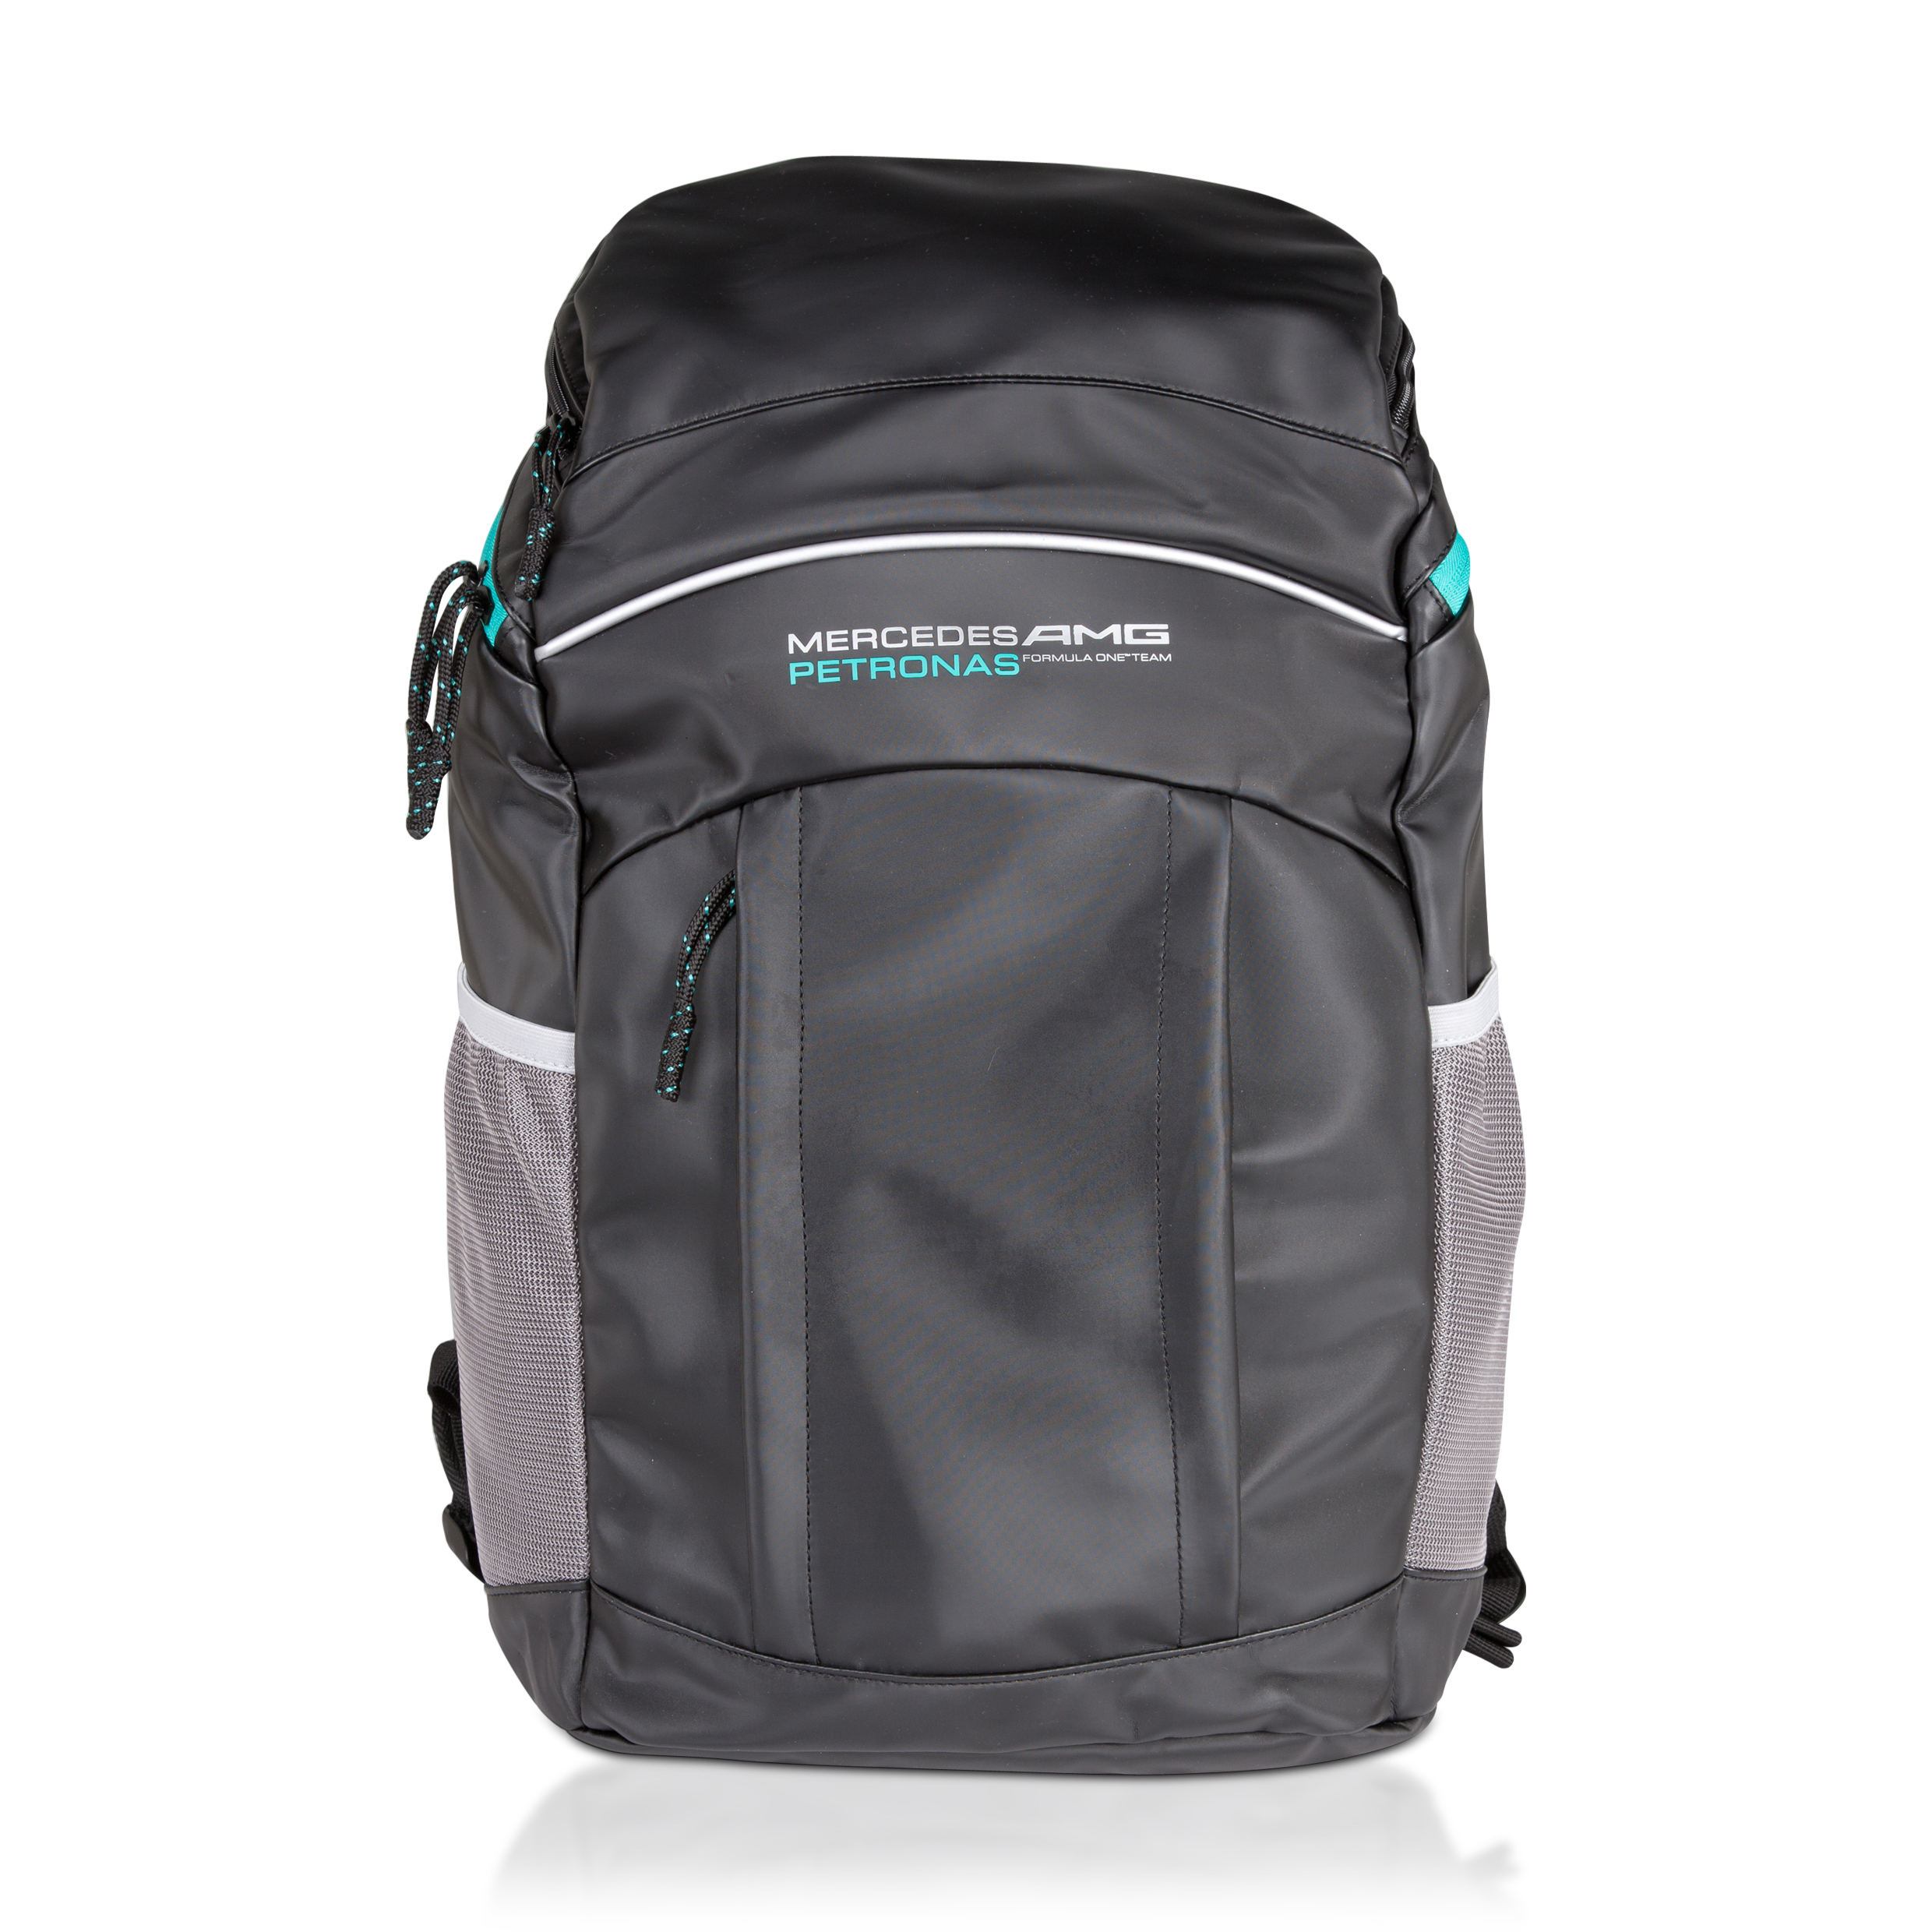 Mercedes AMG Petronas Backpack